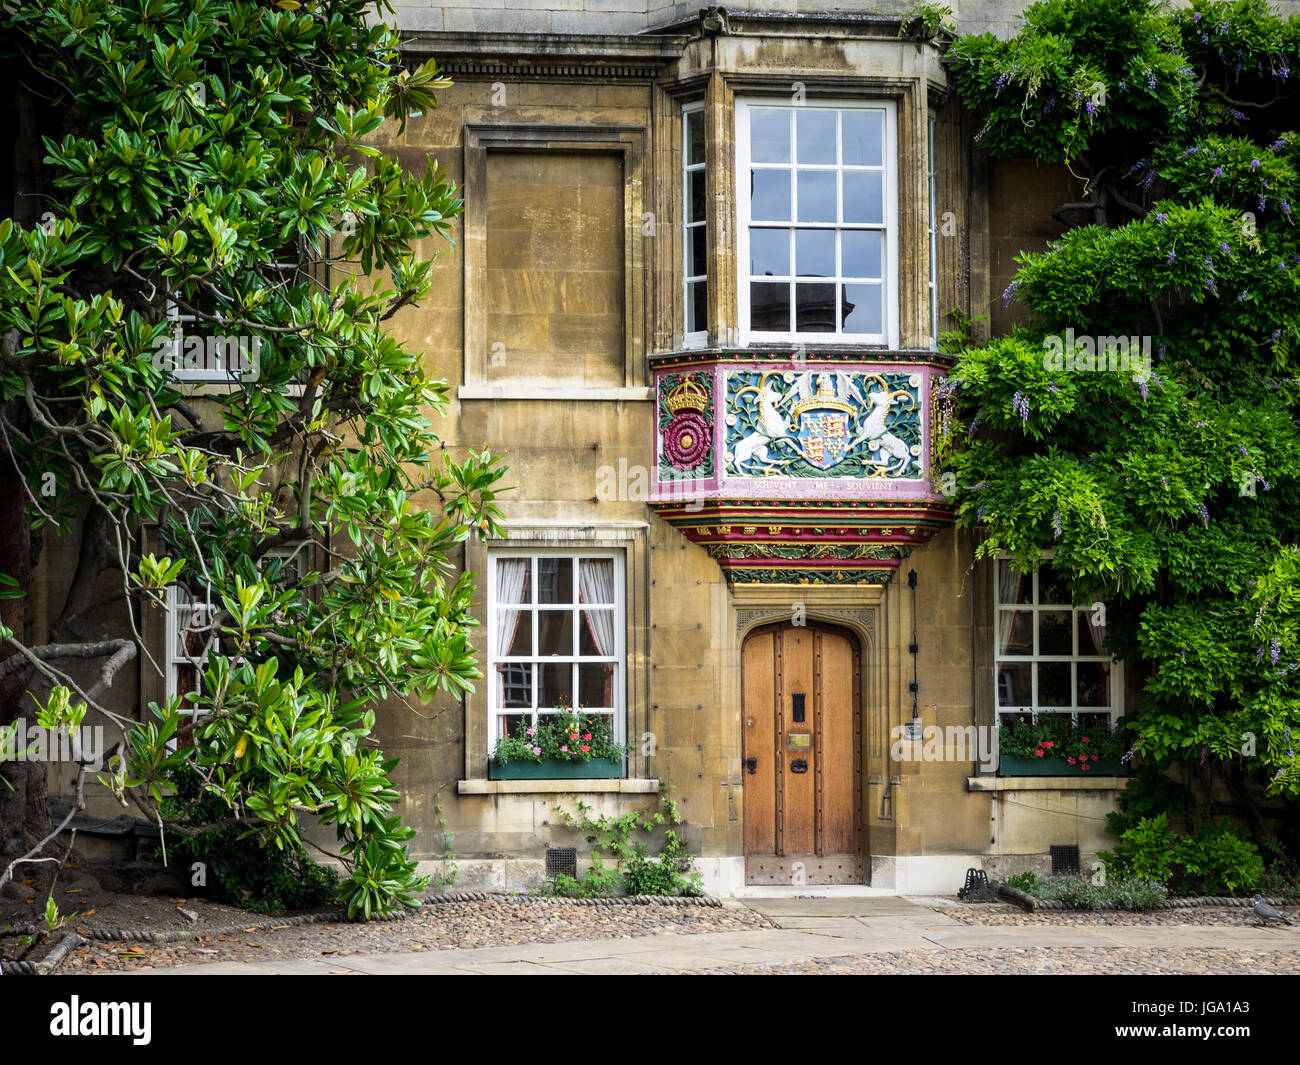 Christ's College Cambridge. The Master's Lodge at Christ's College, part of the University of Cambridge - Stock Image